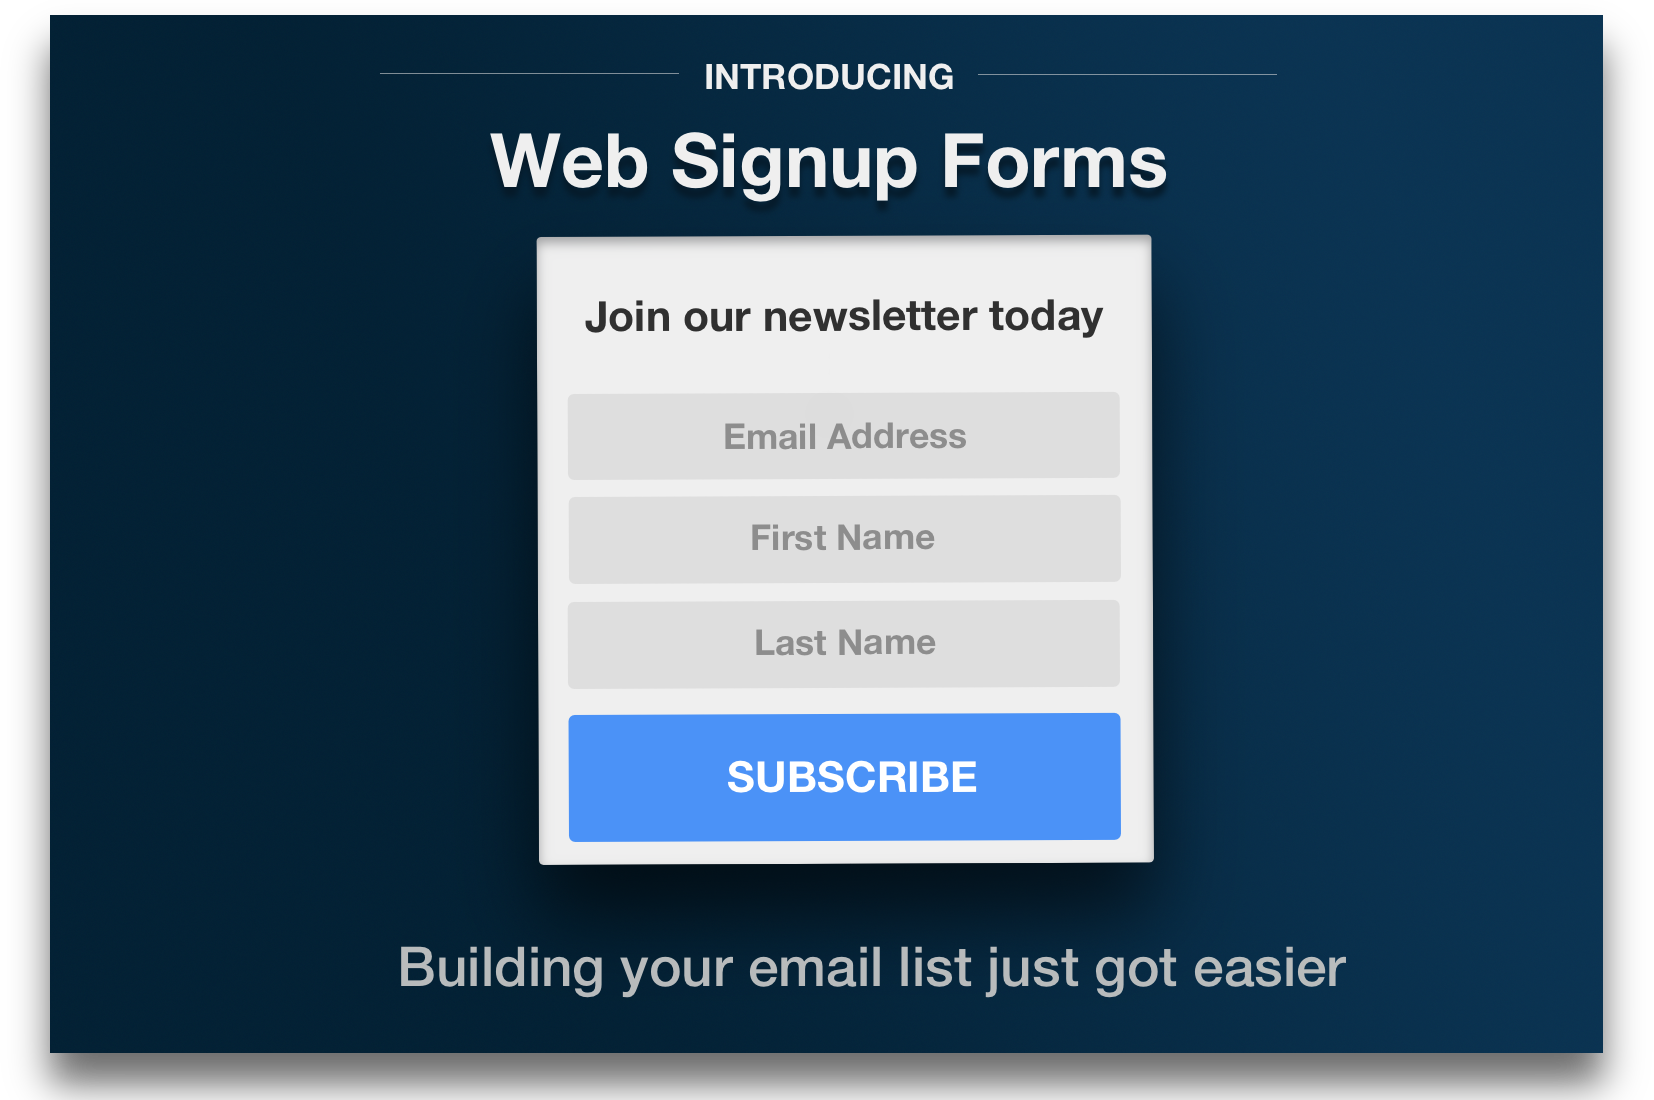 Introducing Web Signup Forms